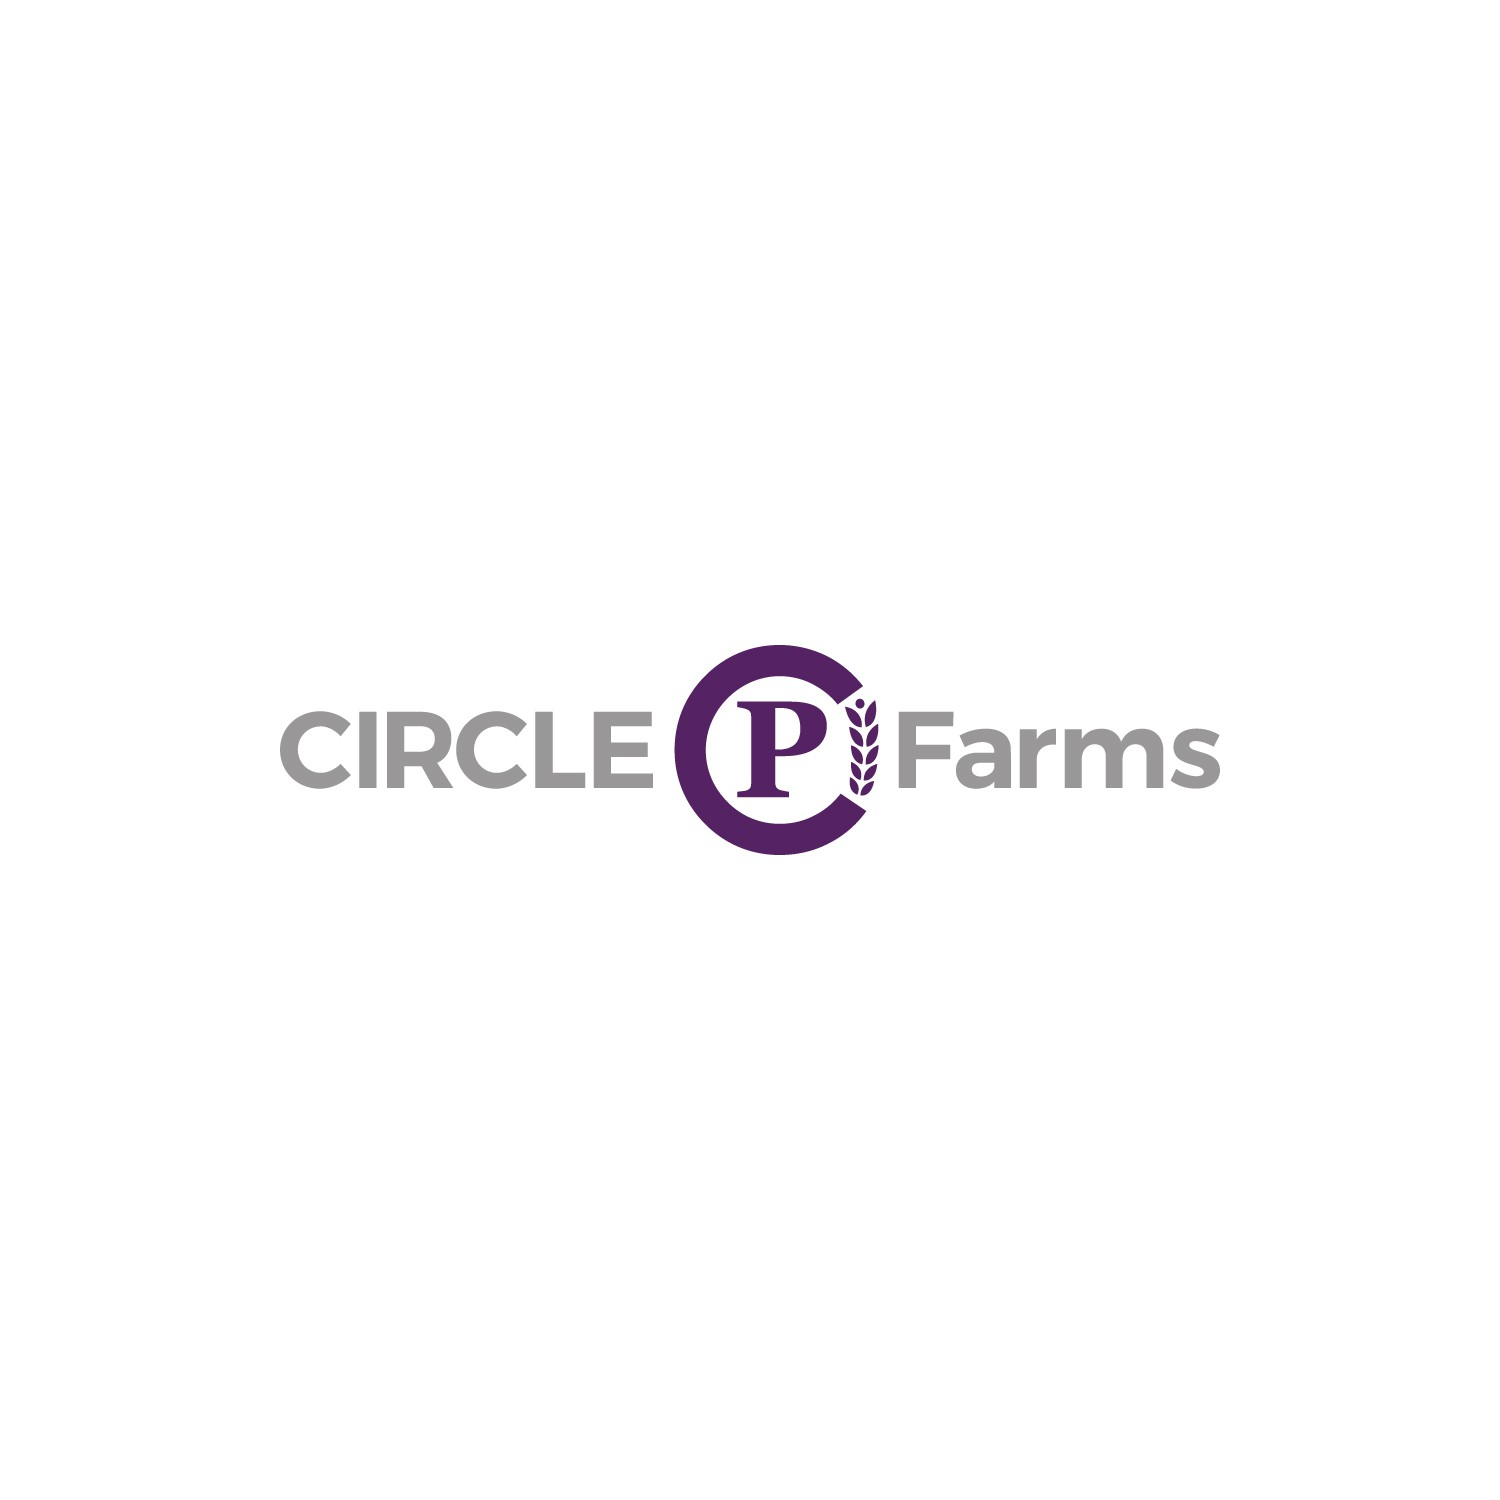 we need a unique, catchy logo for our family farm